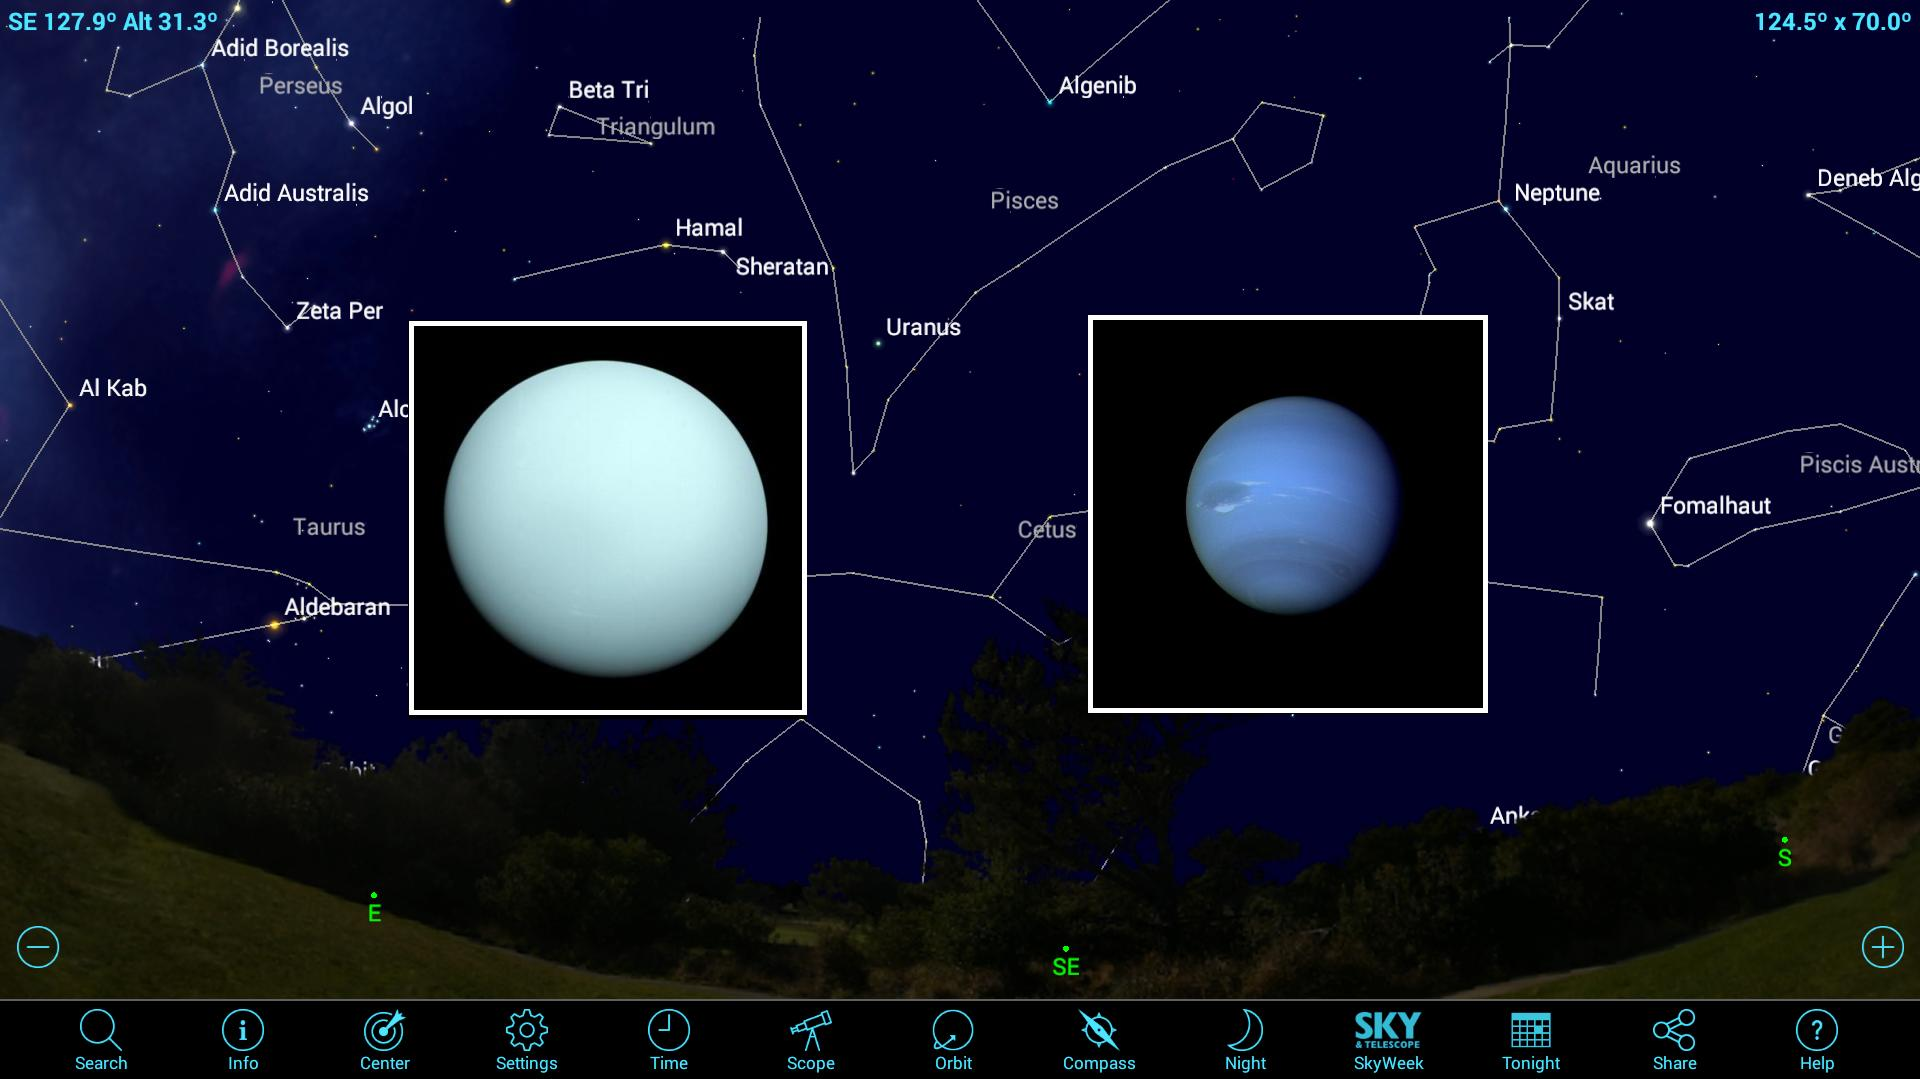 How to Use Mobile Apps to See the Solar System's Ice-Giant Planets